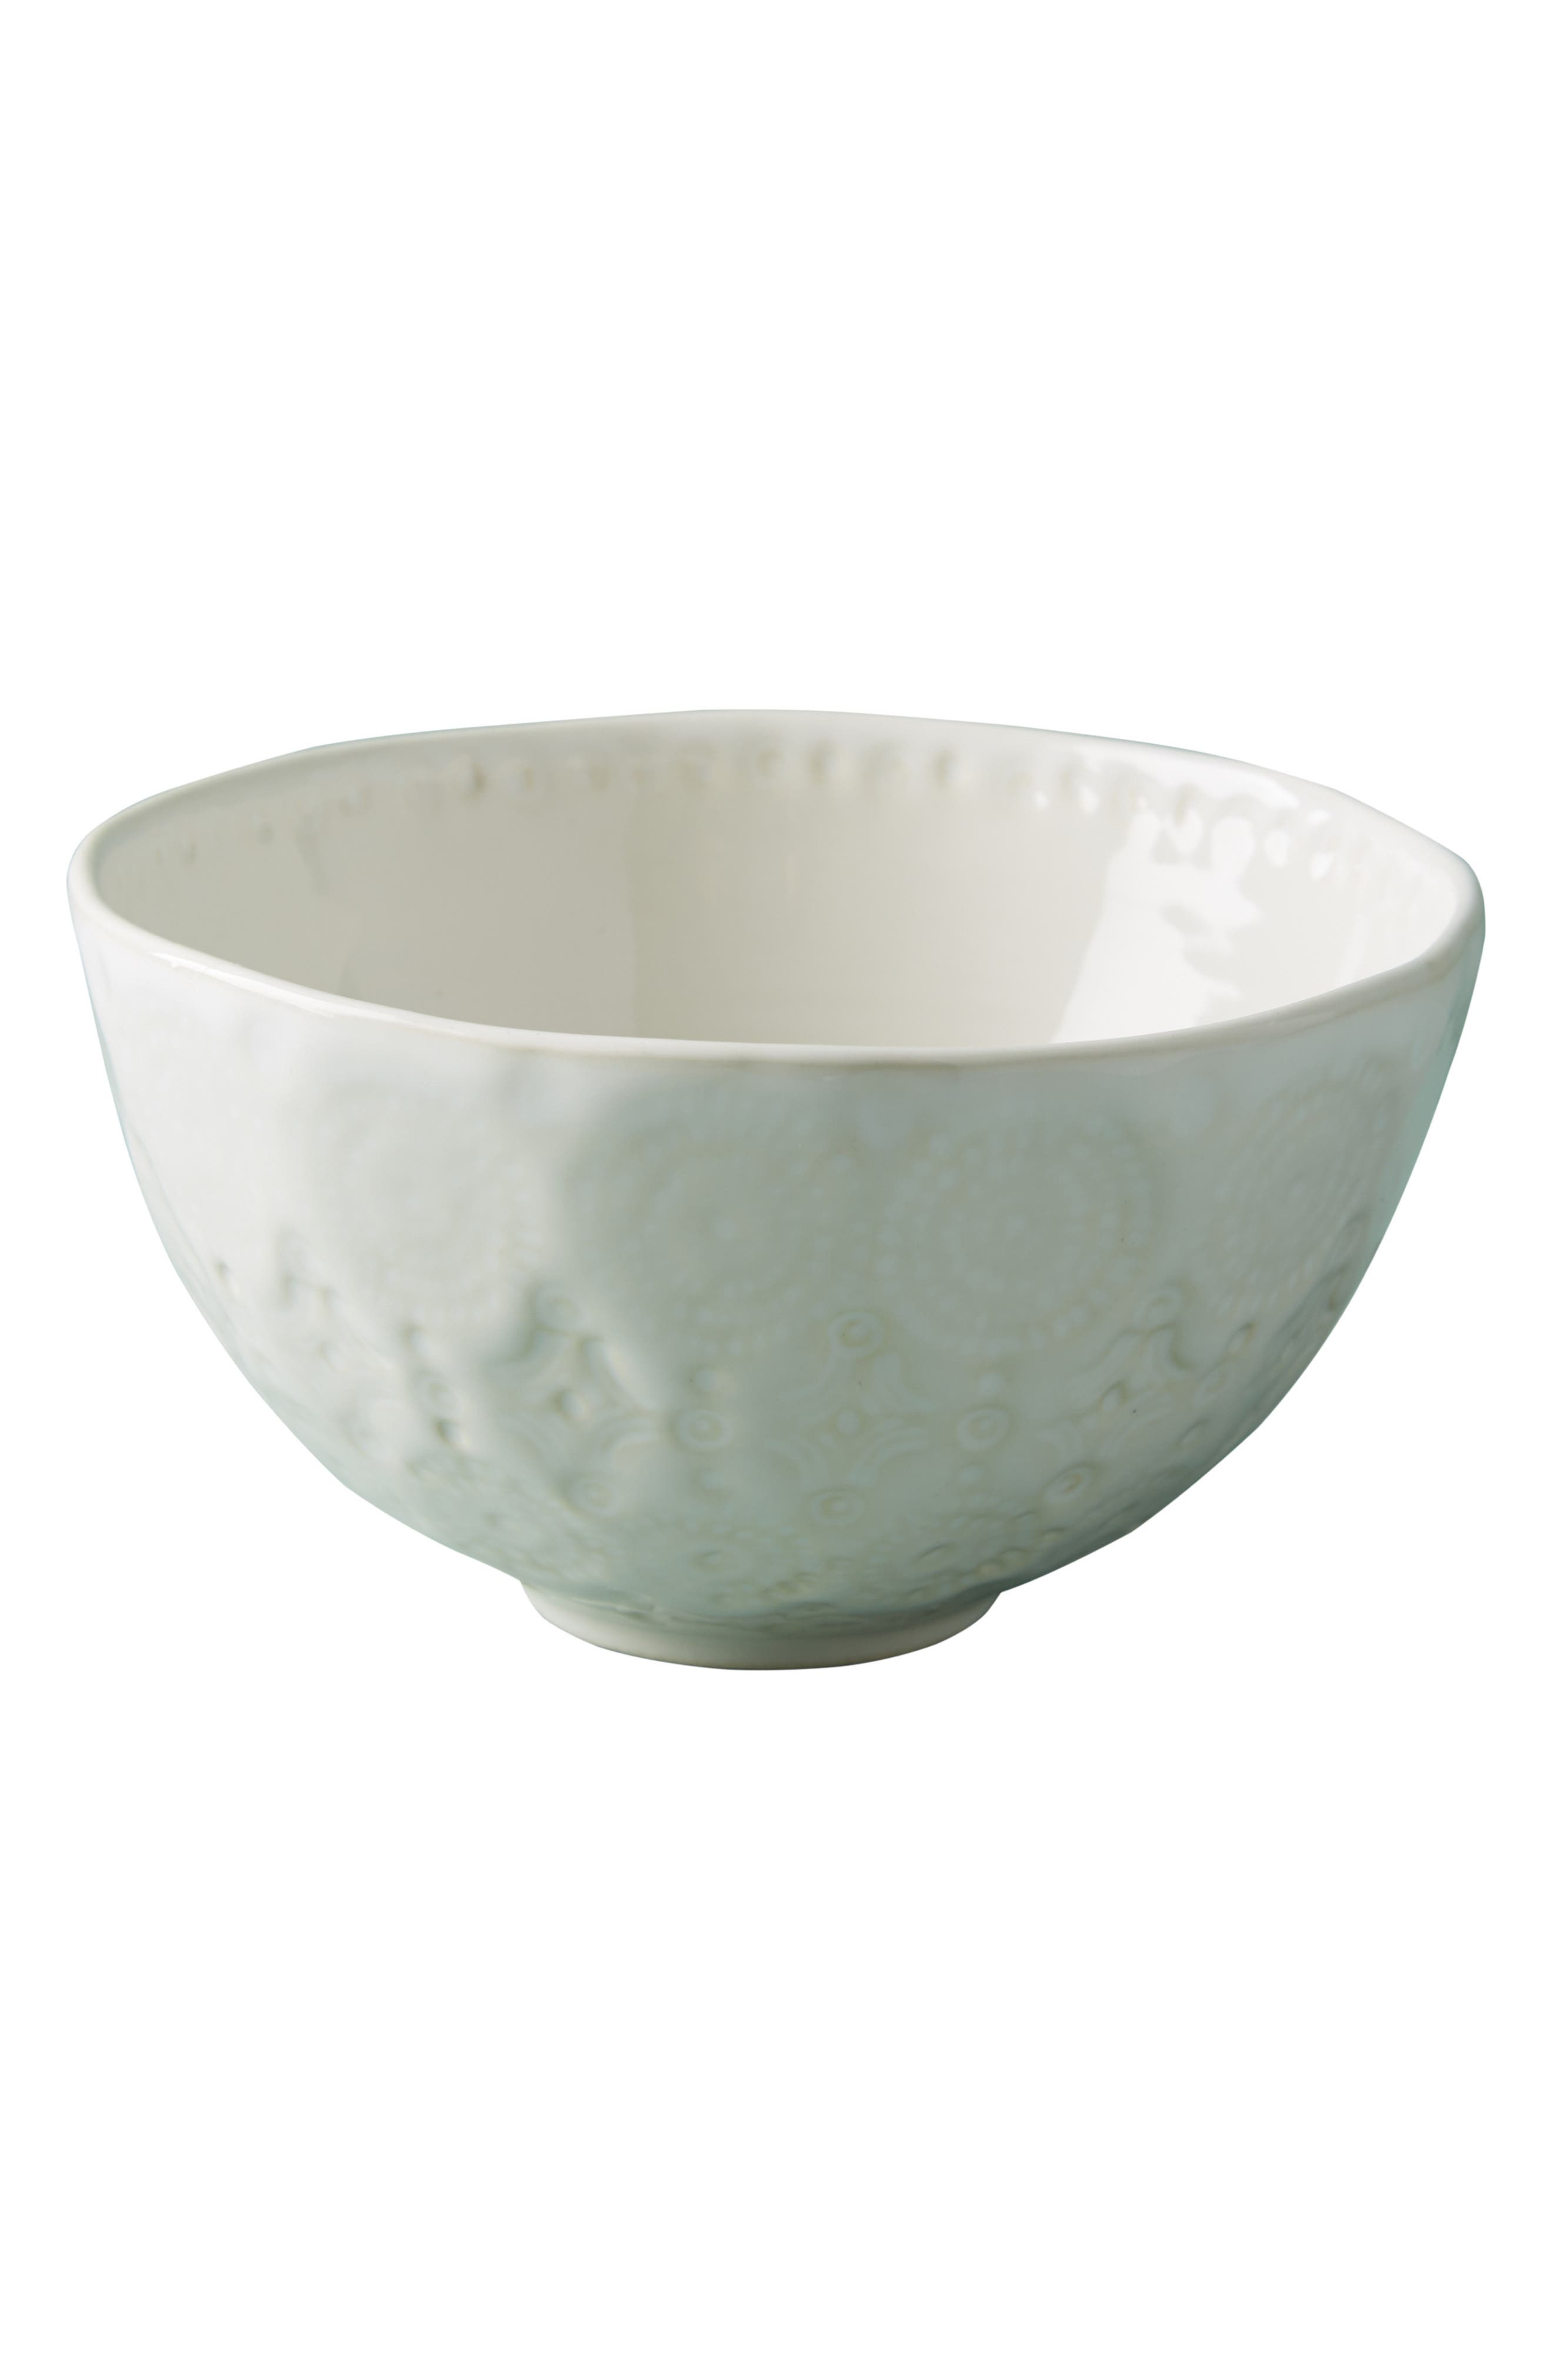 Old Havana Stoneware Cereal Bowl,                             Alternate thumbnail 3, color,                             WHITE